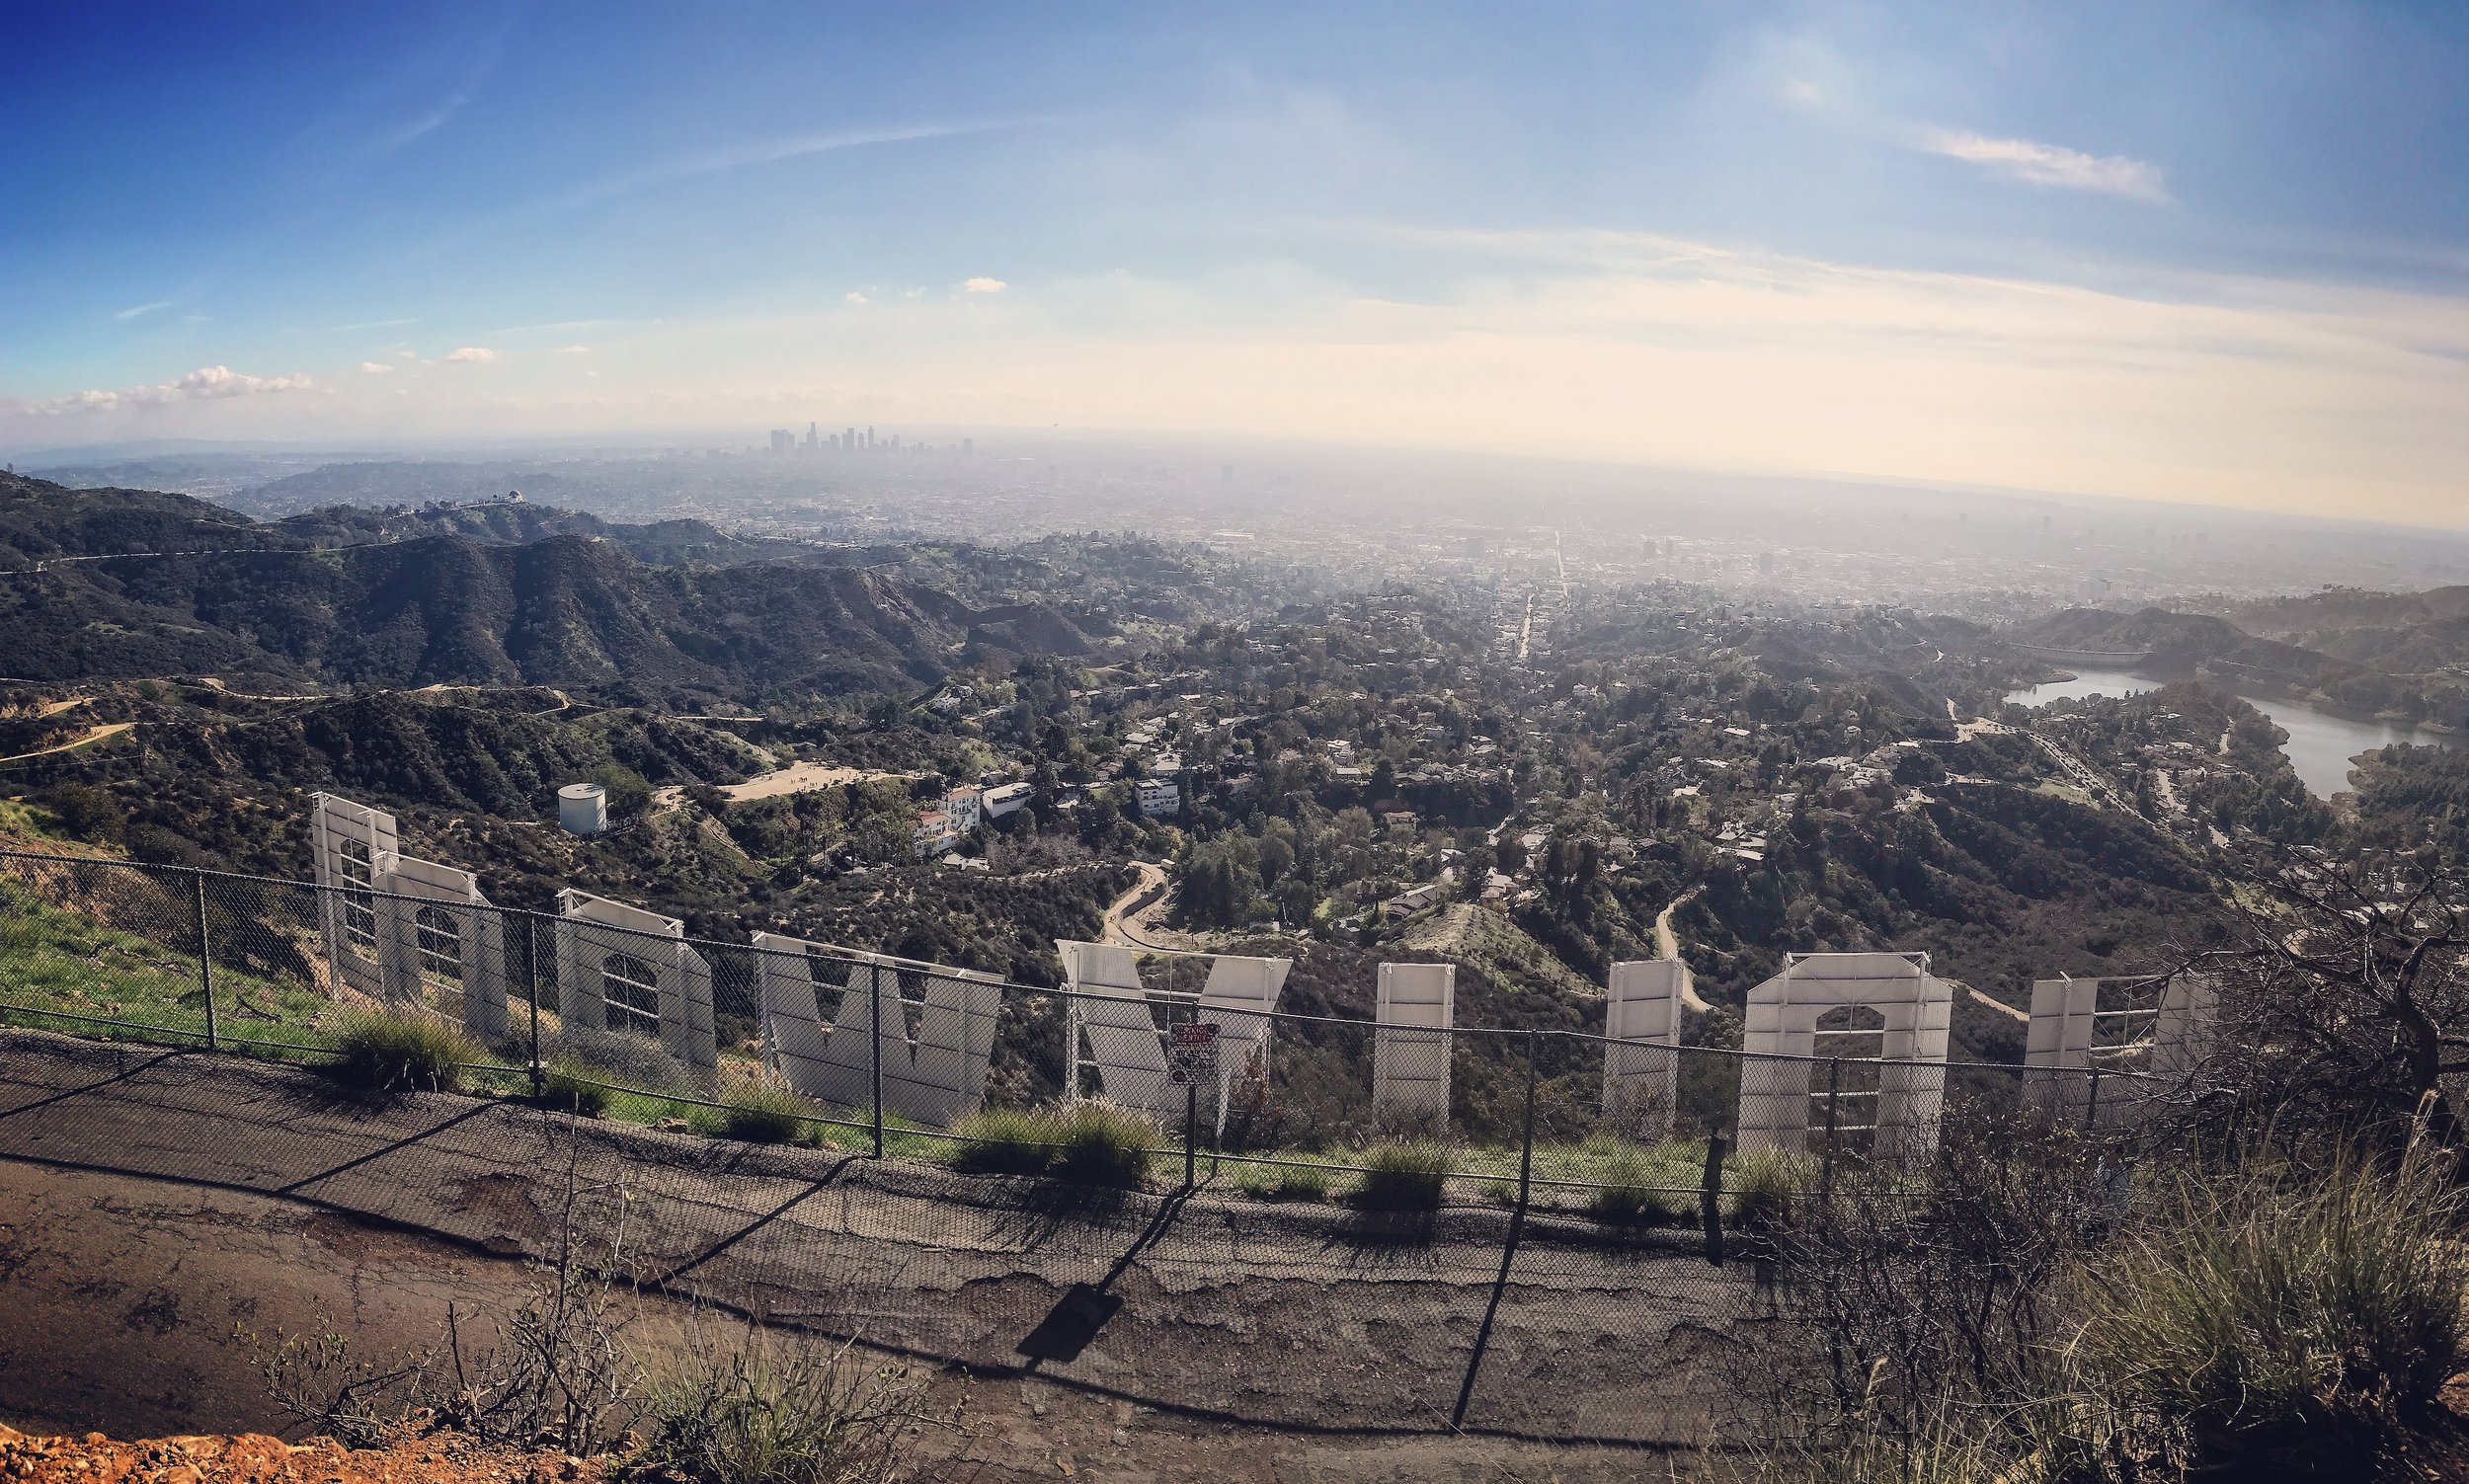 Made it to Hollywood!